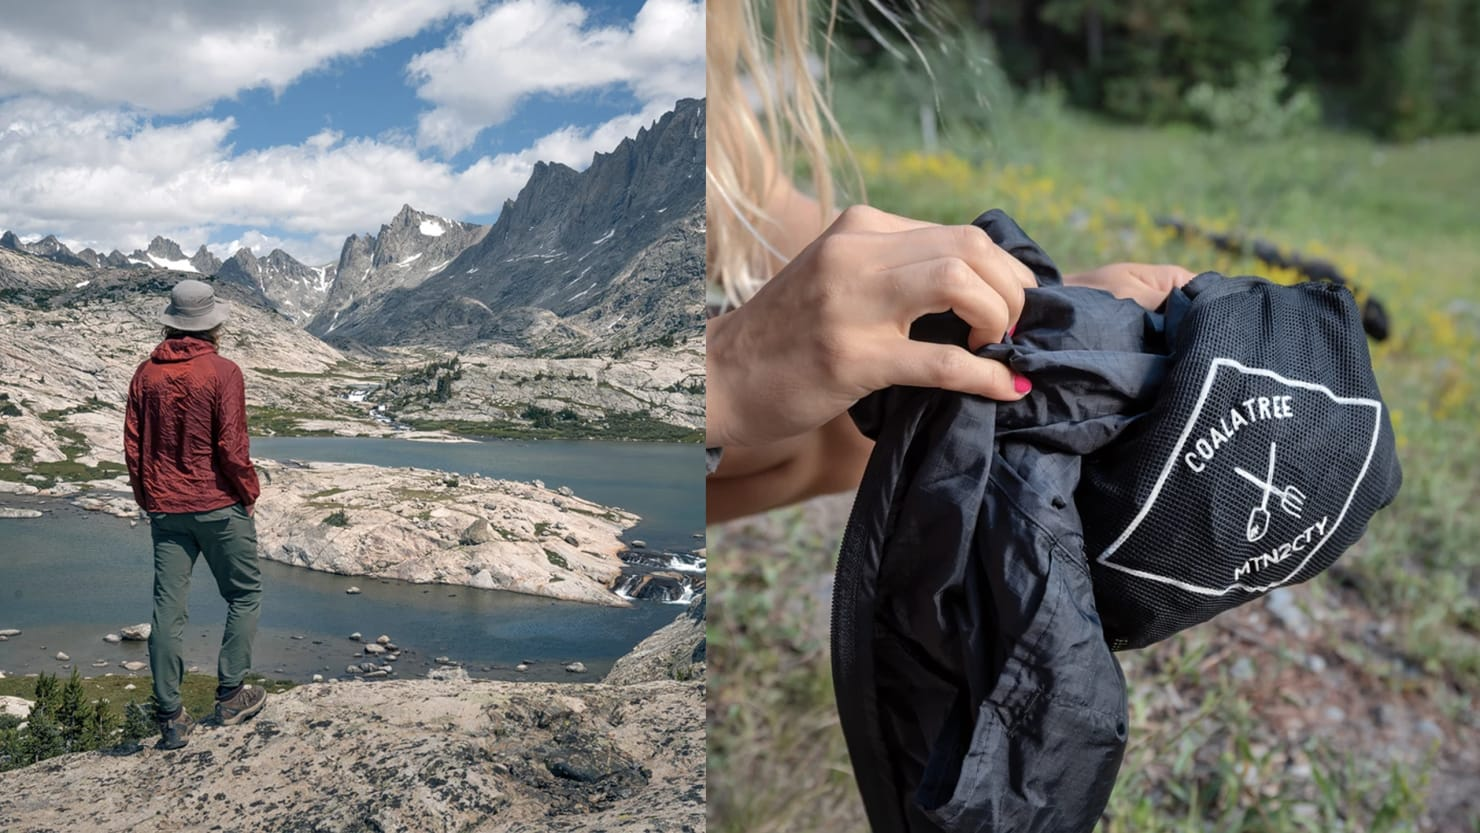 This Windbreaker Packs Down into a Pocket and Self-Heals If Punctured